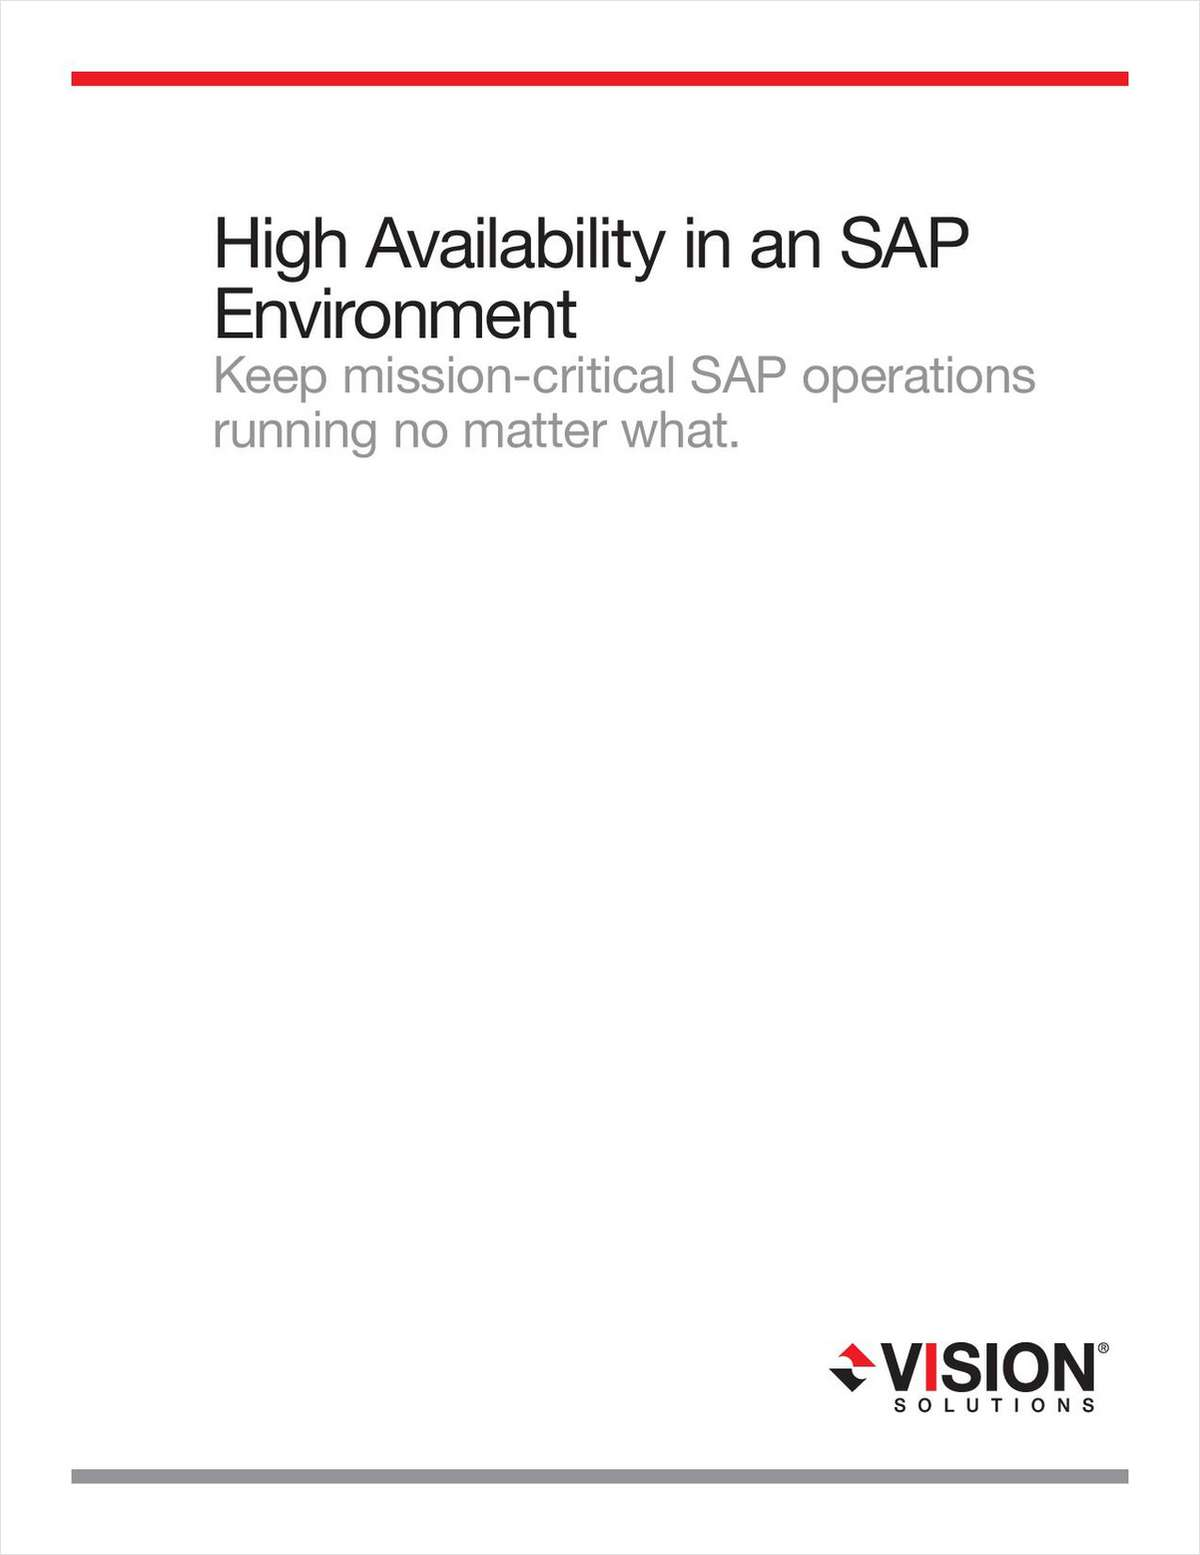 High Availability in an SAP Environment Keep Mission-Critical SAP Operations Running no Matter What